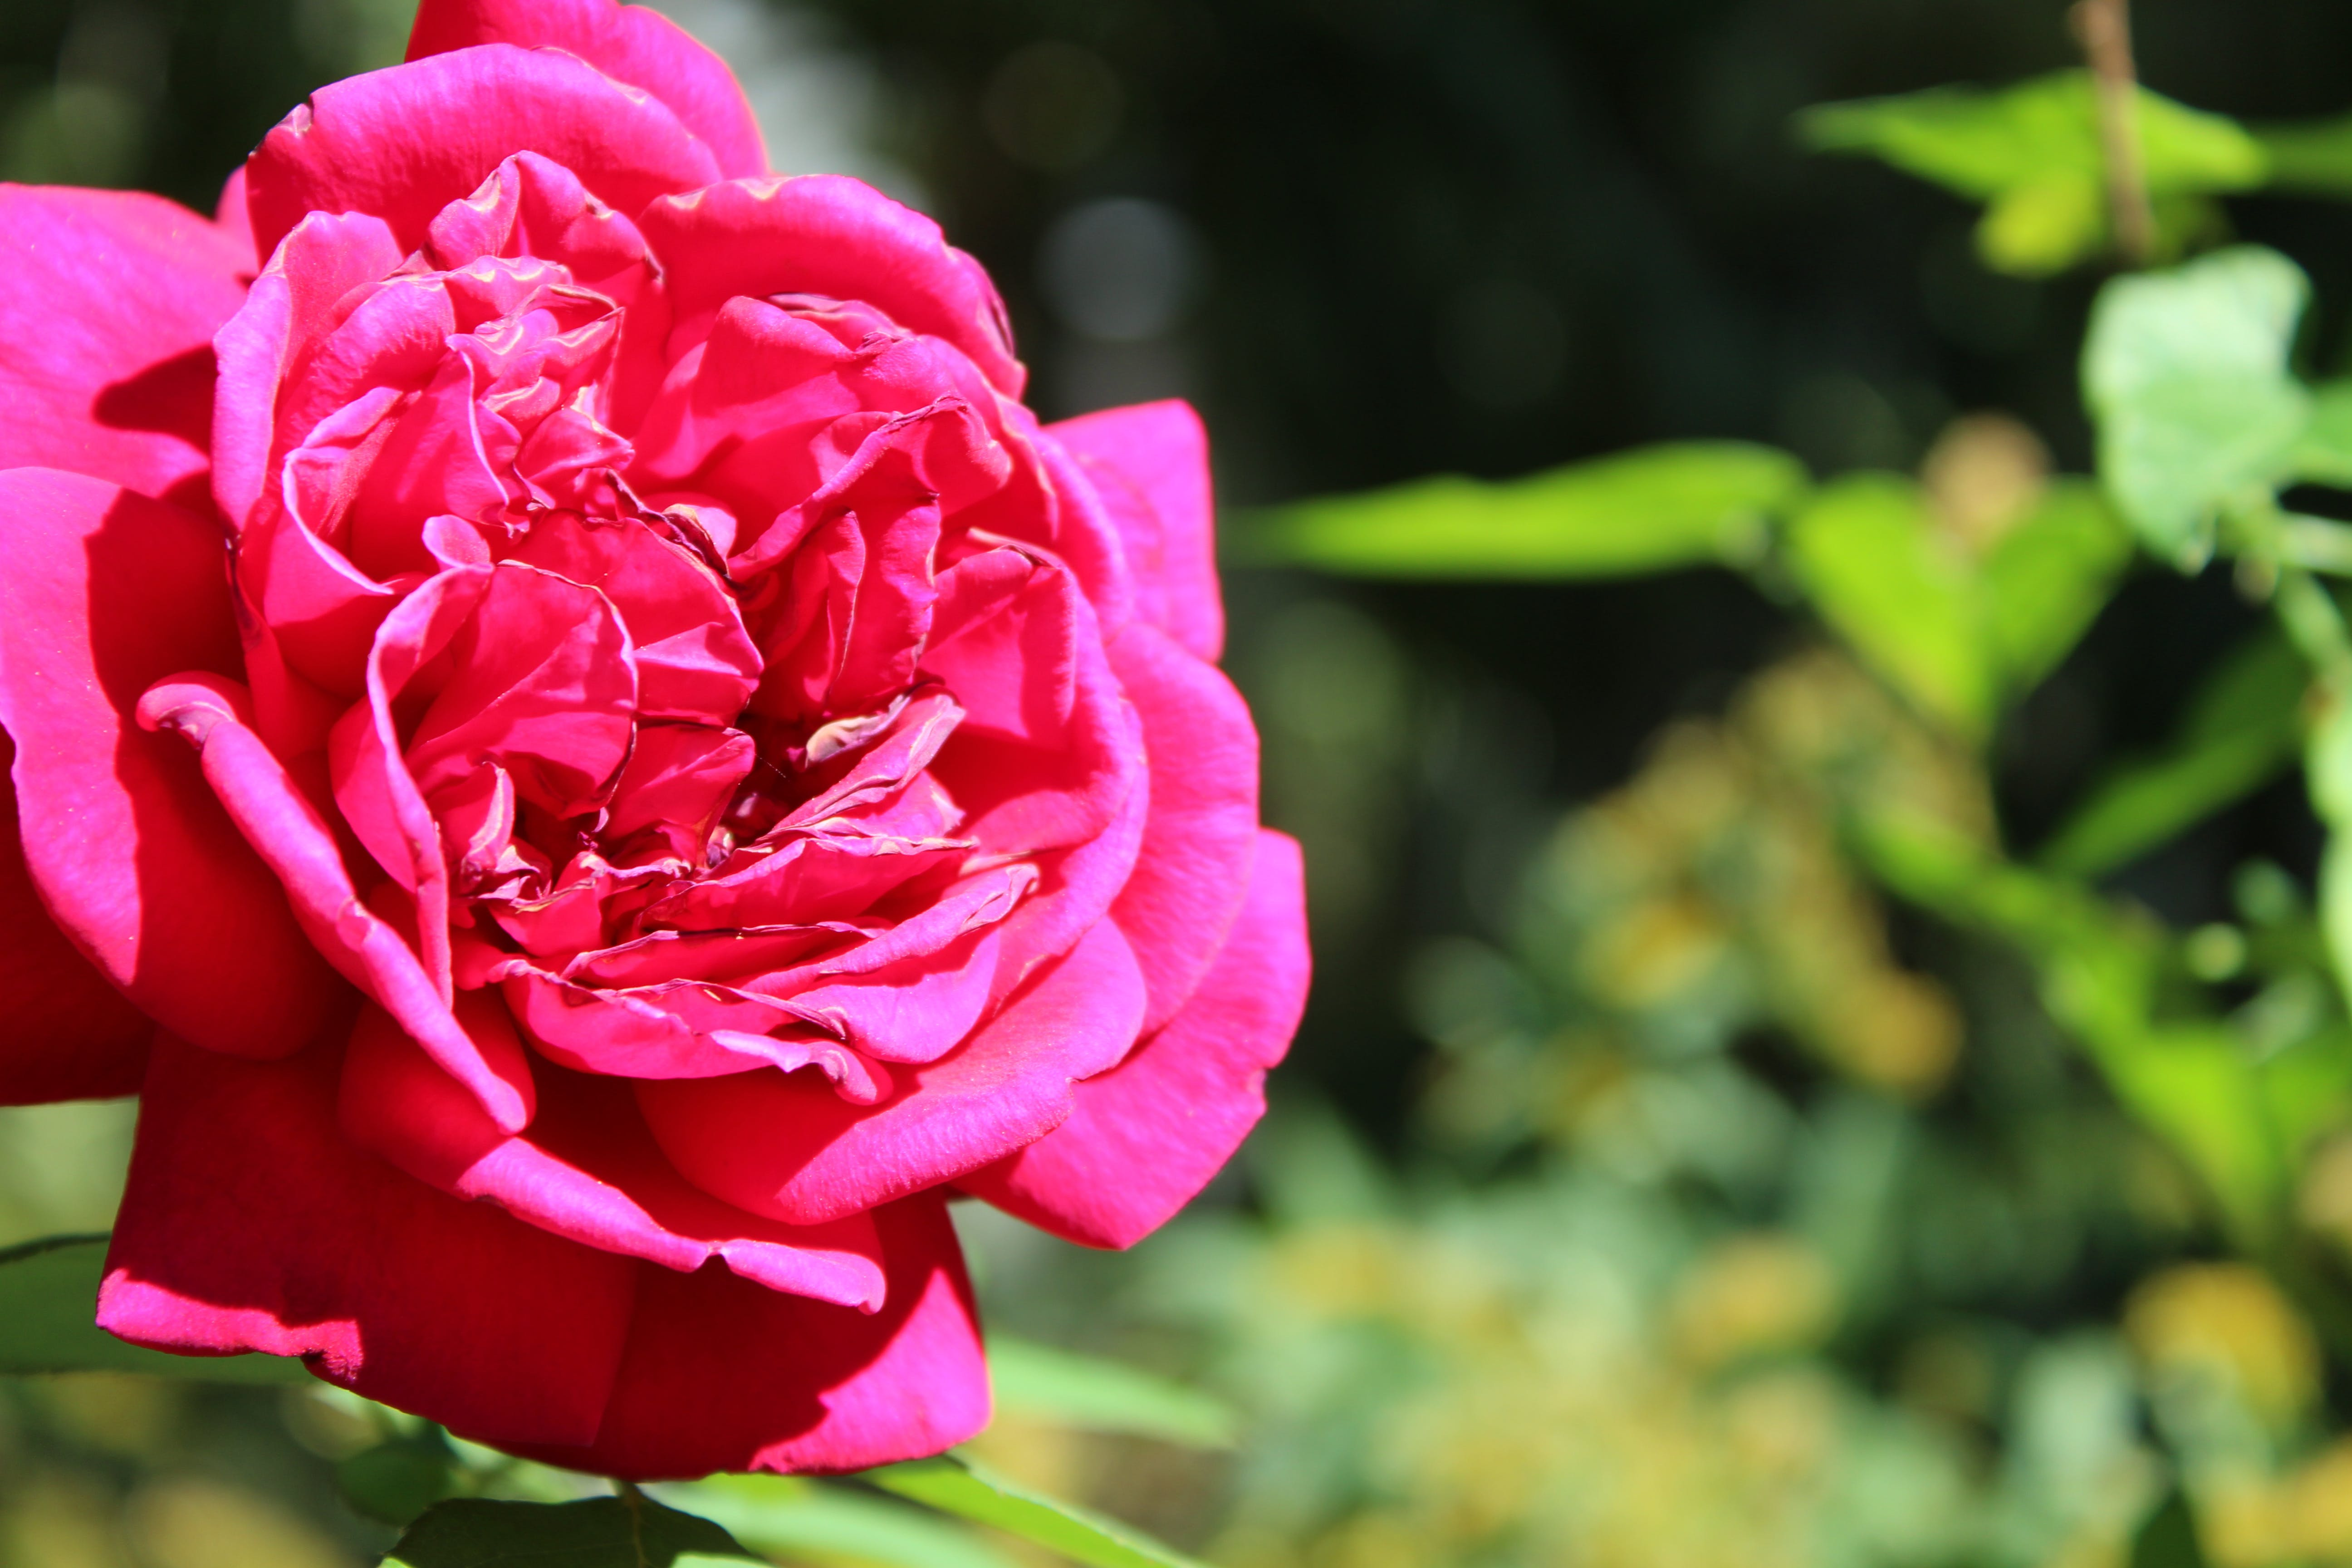 Shallow Focus of Pink Rose